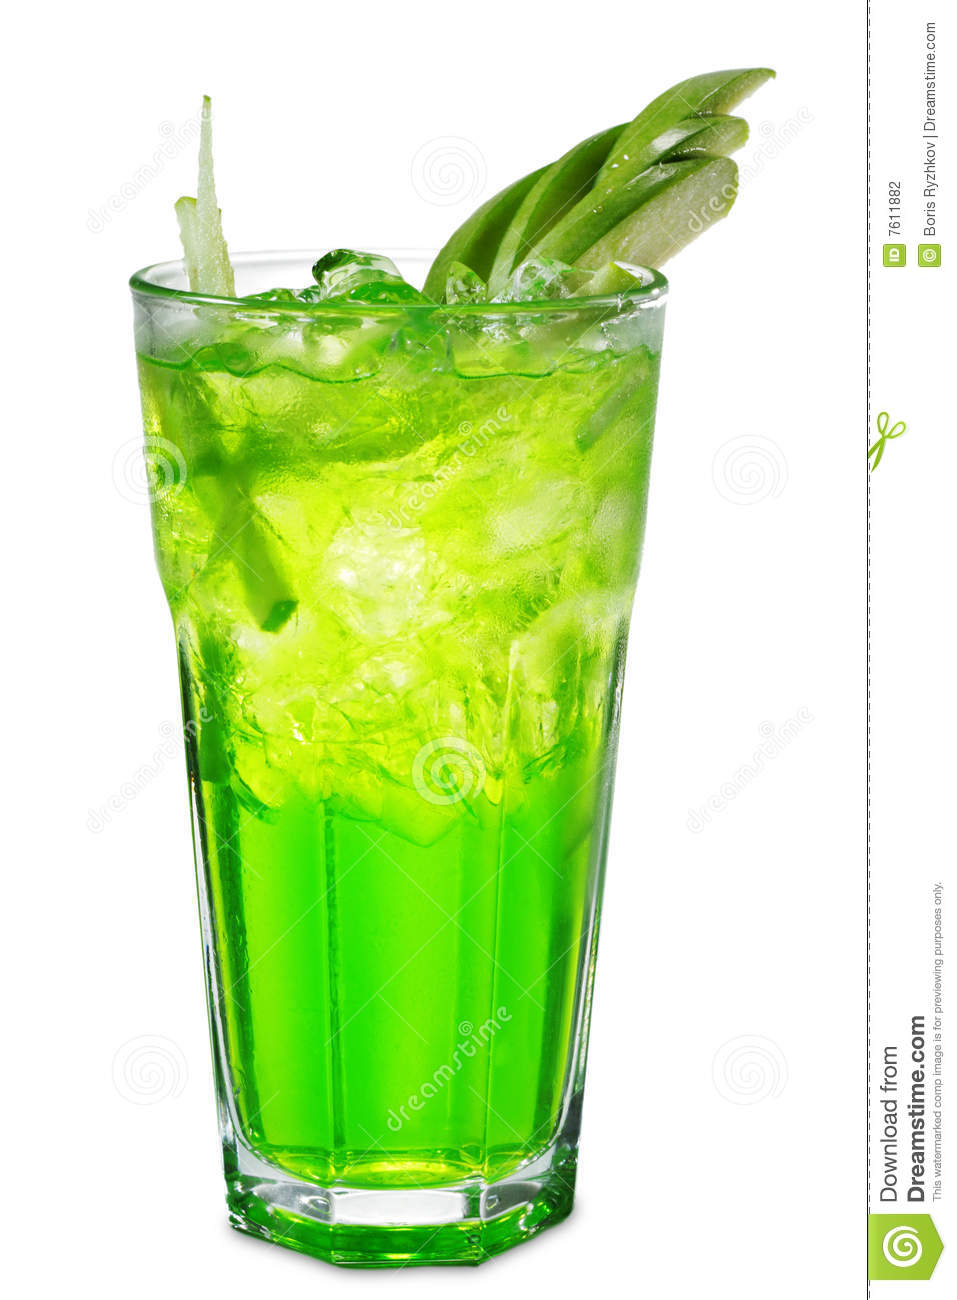 Green alcoholic cocktail stock photography image 7611882 for Green apple mixed drinks